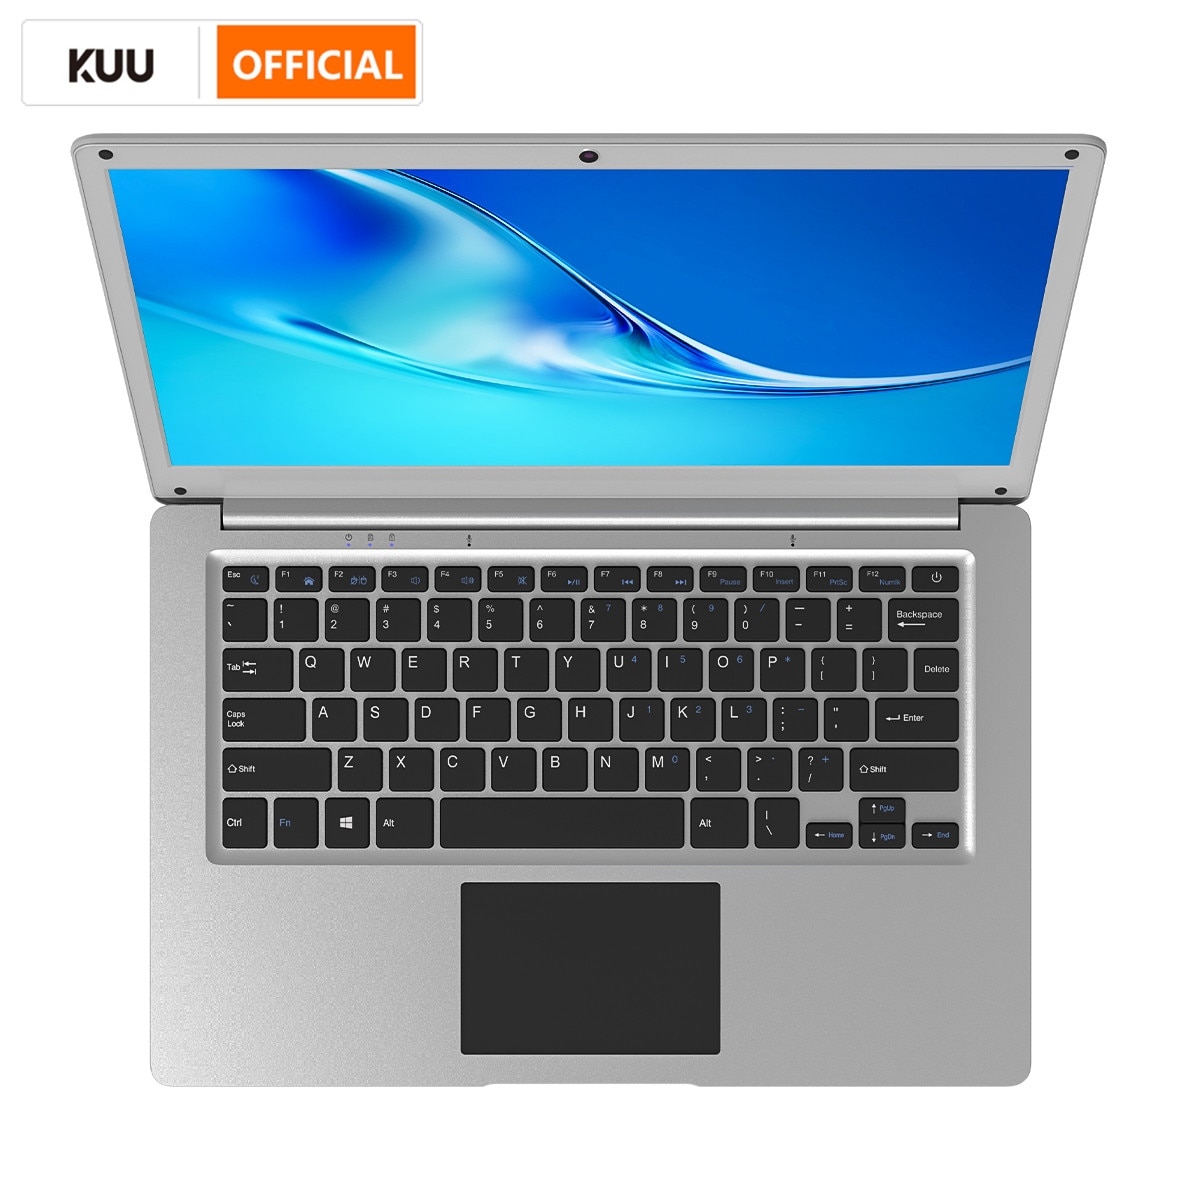 Student Laptops 13.3 inch intel 6GB RAM 128GB SSD Windows 10 Notebook WiFi BT 2.0 Camera for Student PC Portable Cheaper Gaming